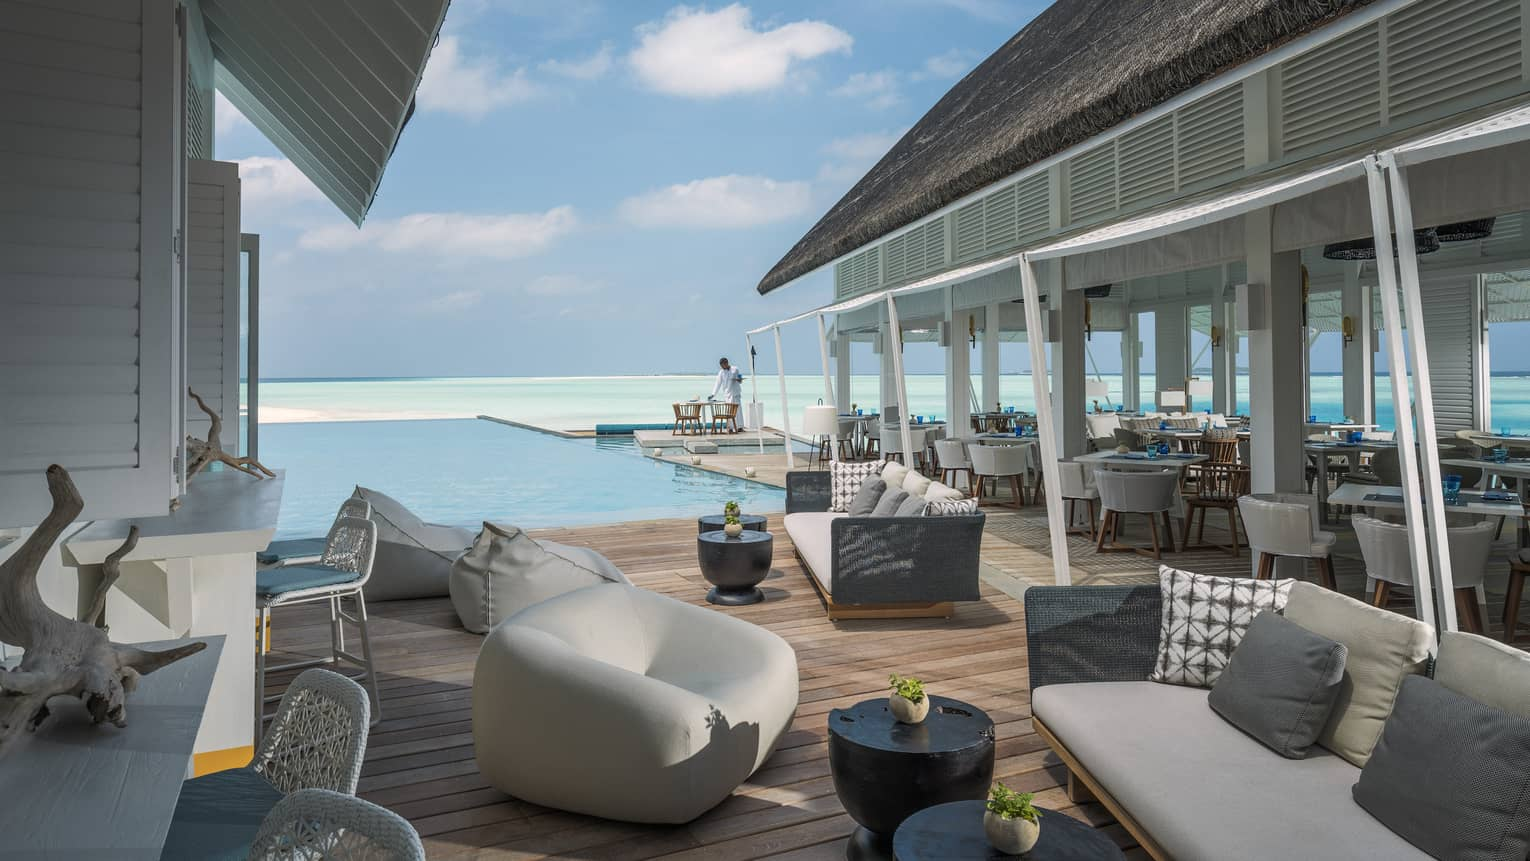 Couches and chairs arranged by a pool overlooking the ocean at the Blu Beach Club